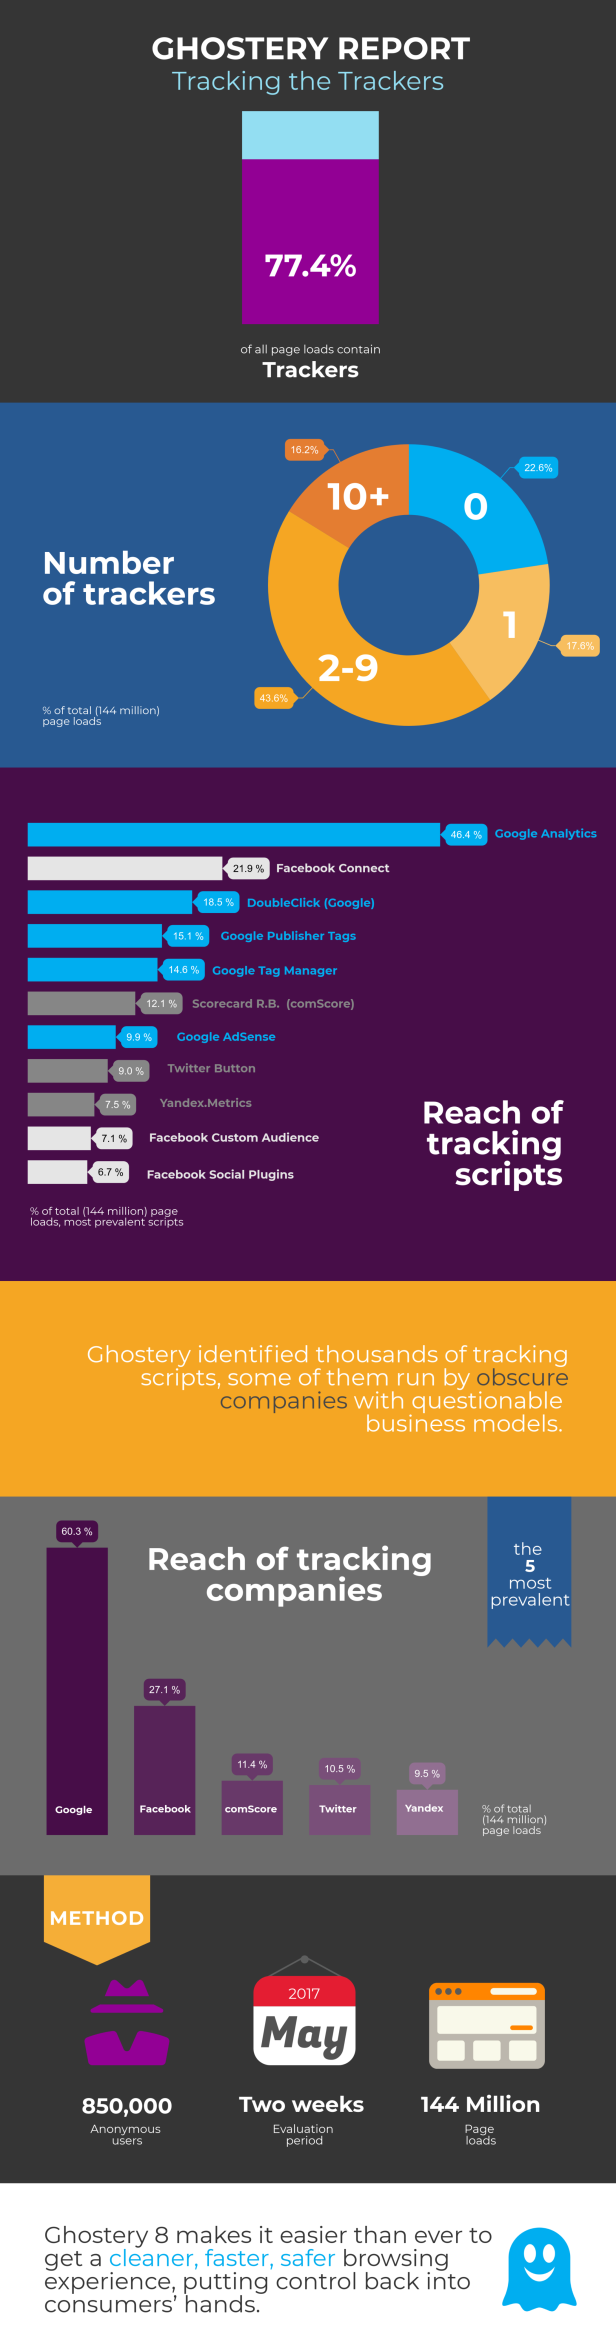 Infographic_Ghostery-EN-uai-2064x7869.png